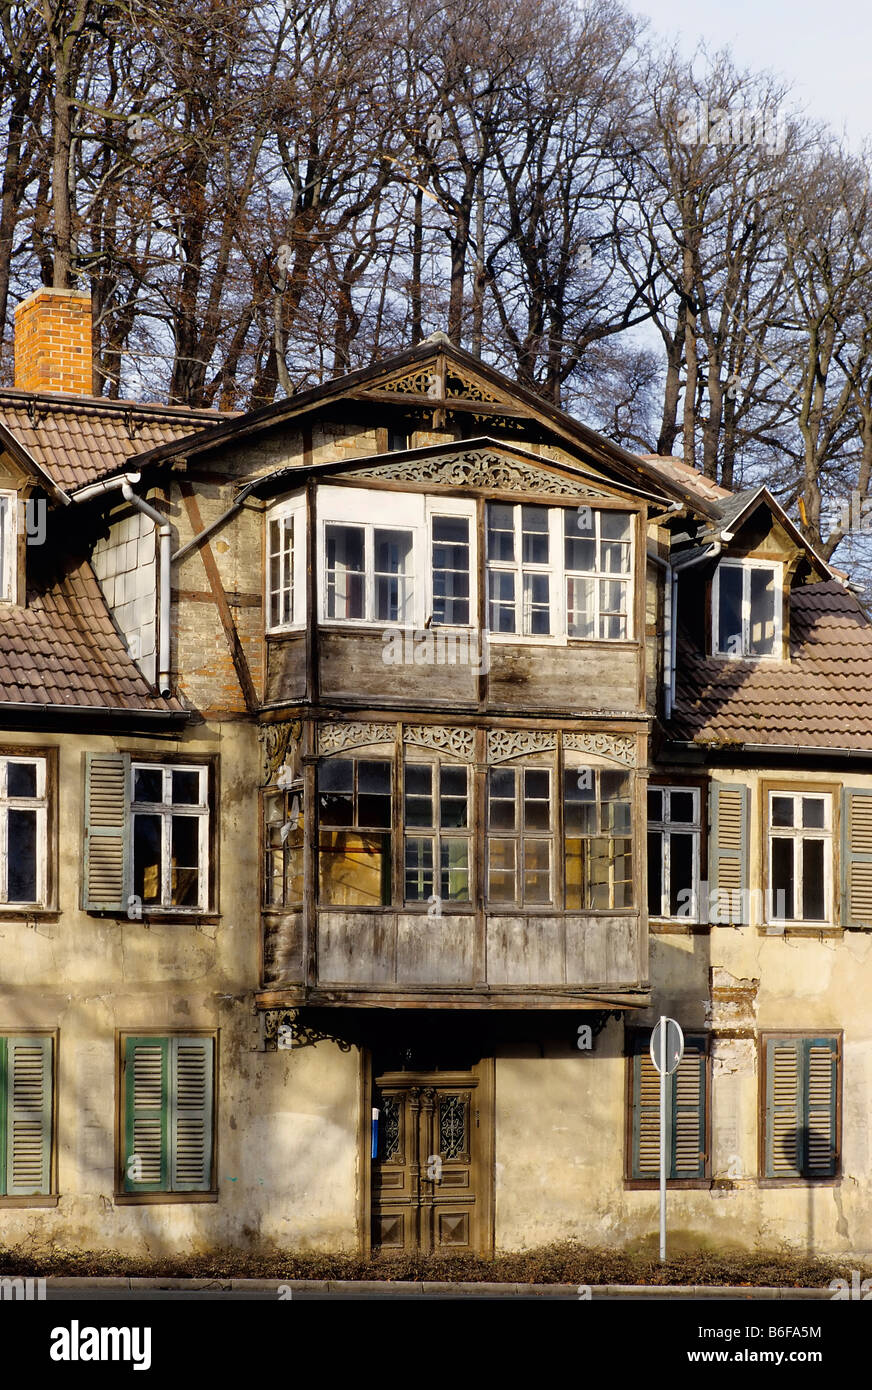 Old House With Wooden Veranda, Unrenovated Condition, Bad Suderode, Harz,  Saxony Anhalt, Germany, Europe